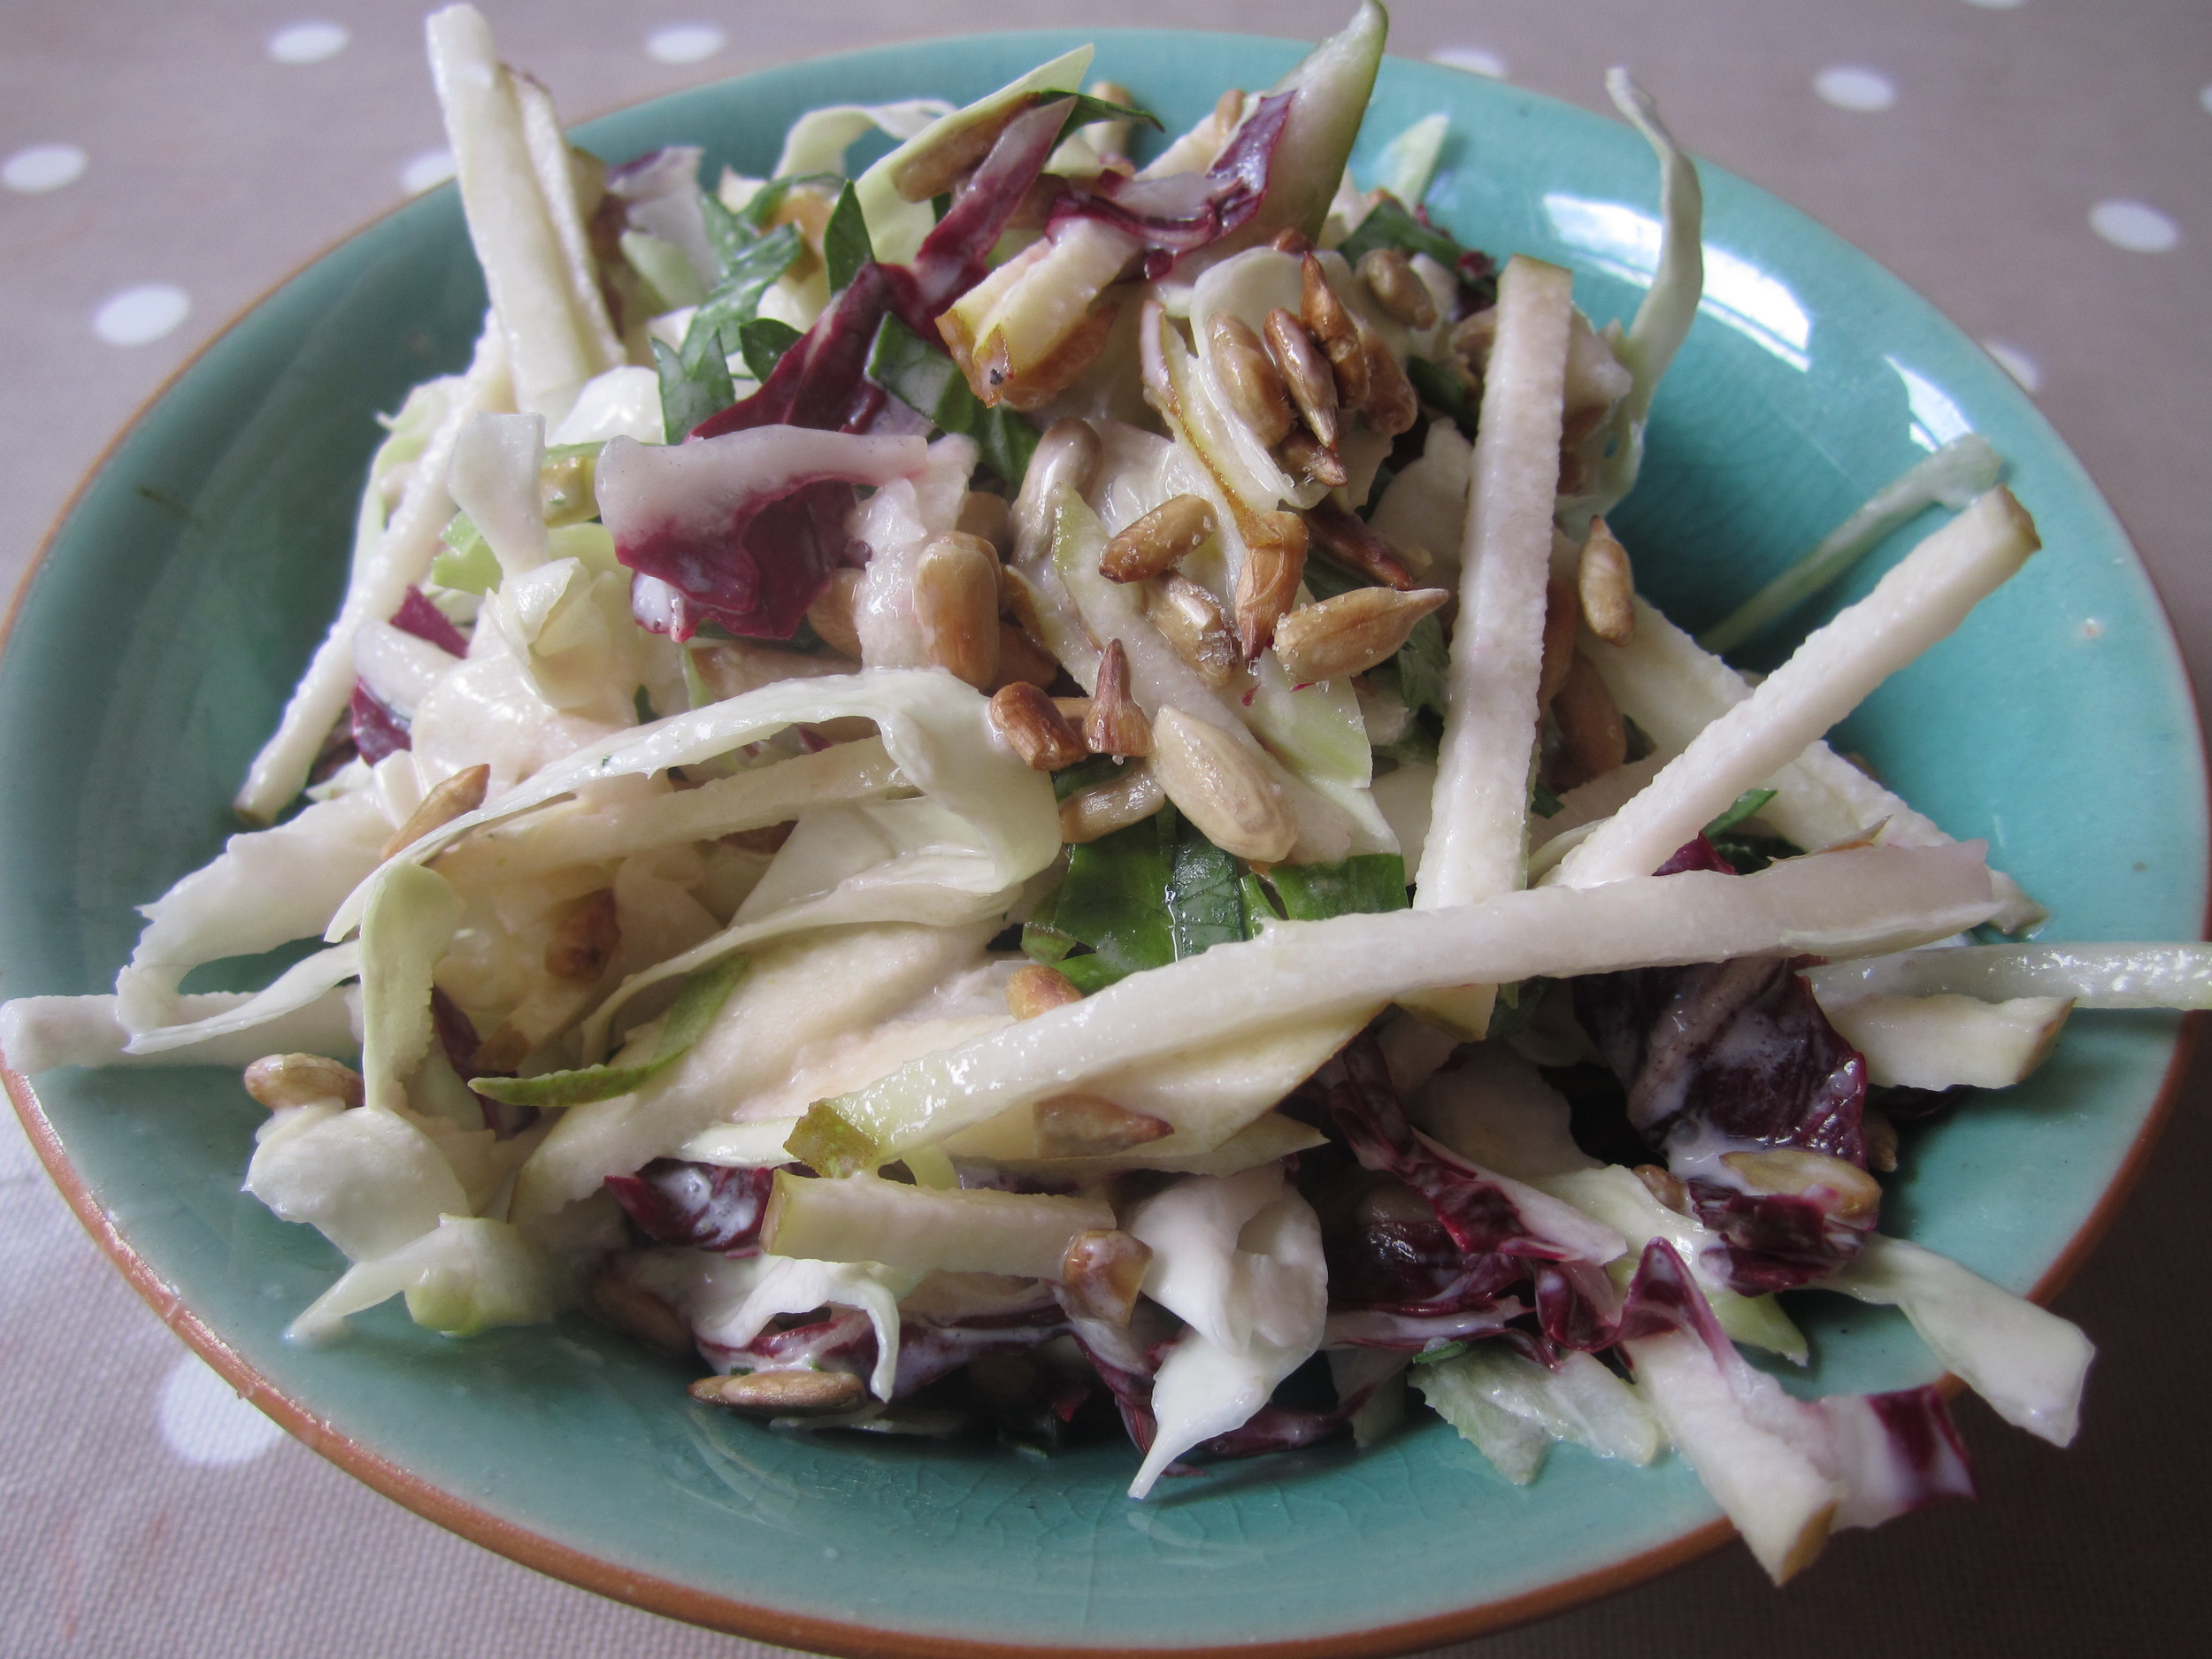 Coleslaw, without the gunk. A perky mix of pears and more.